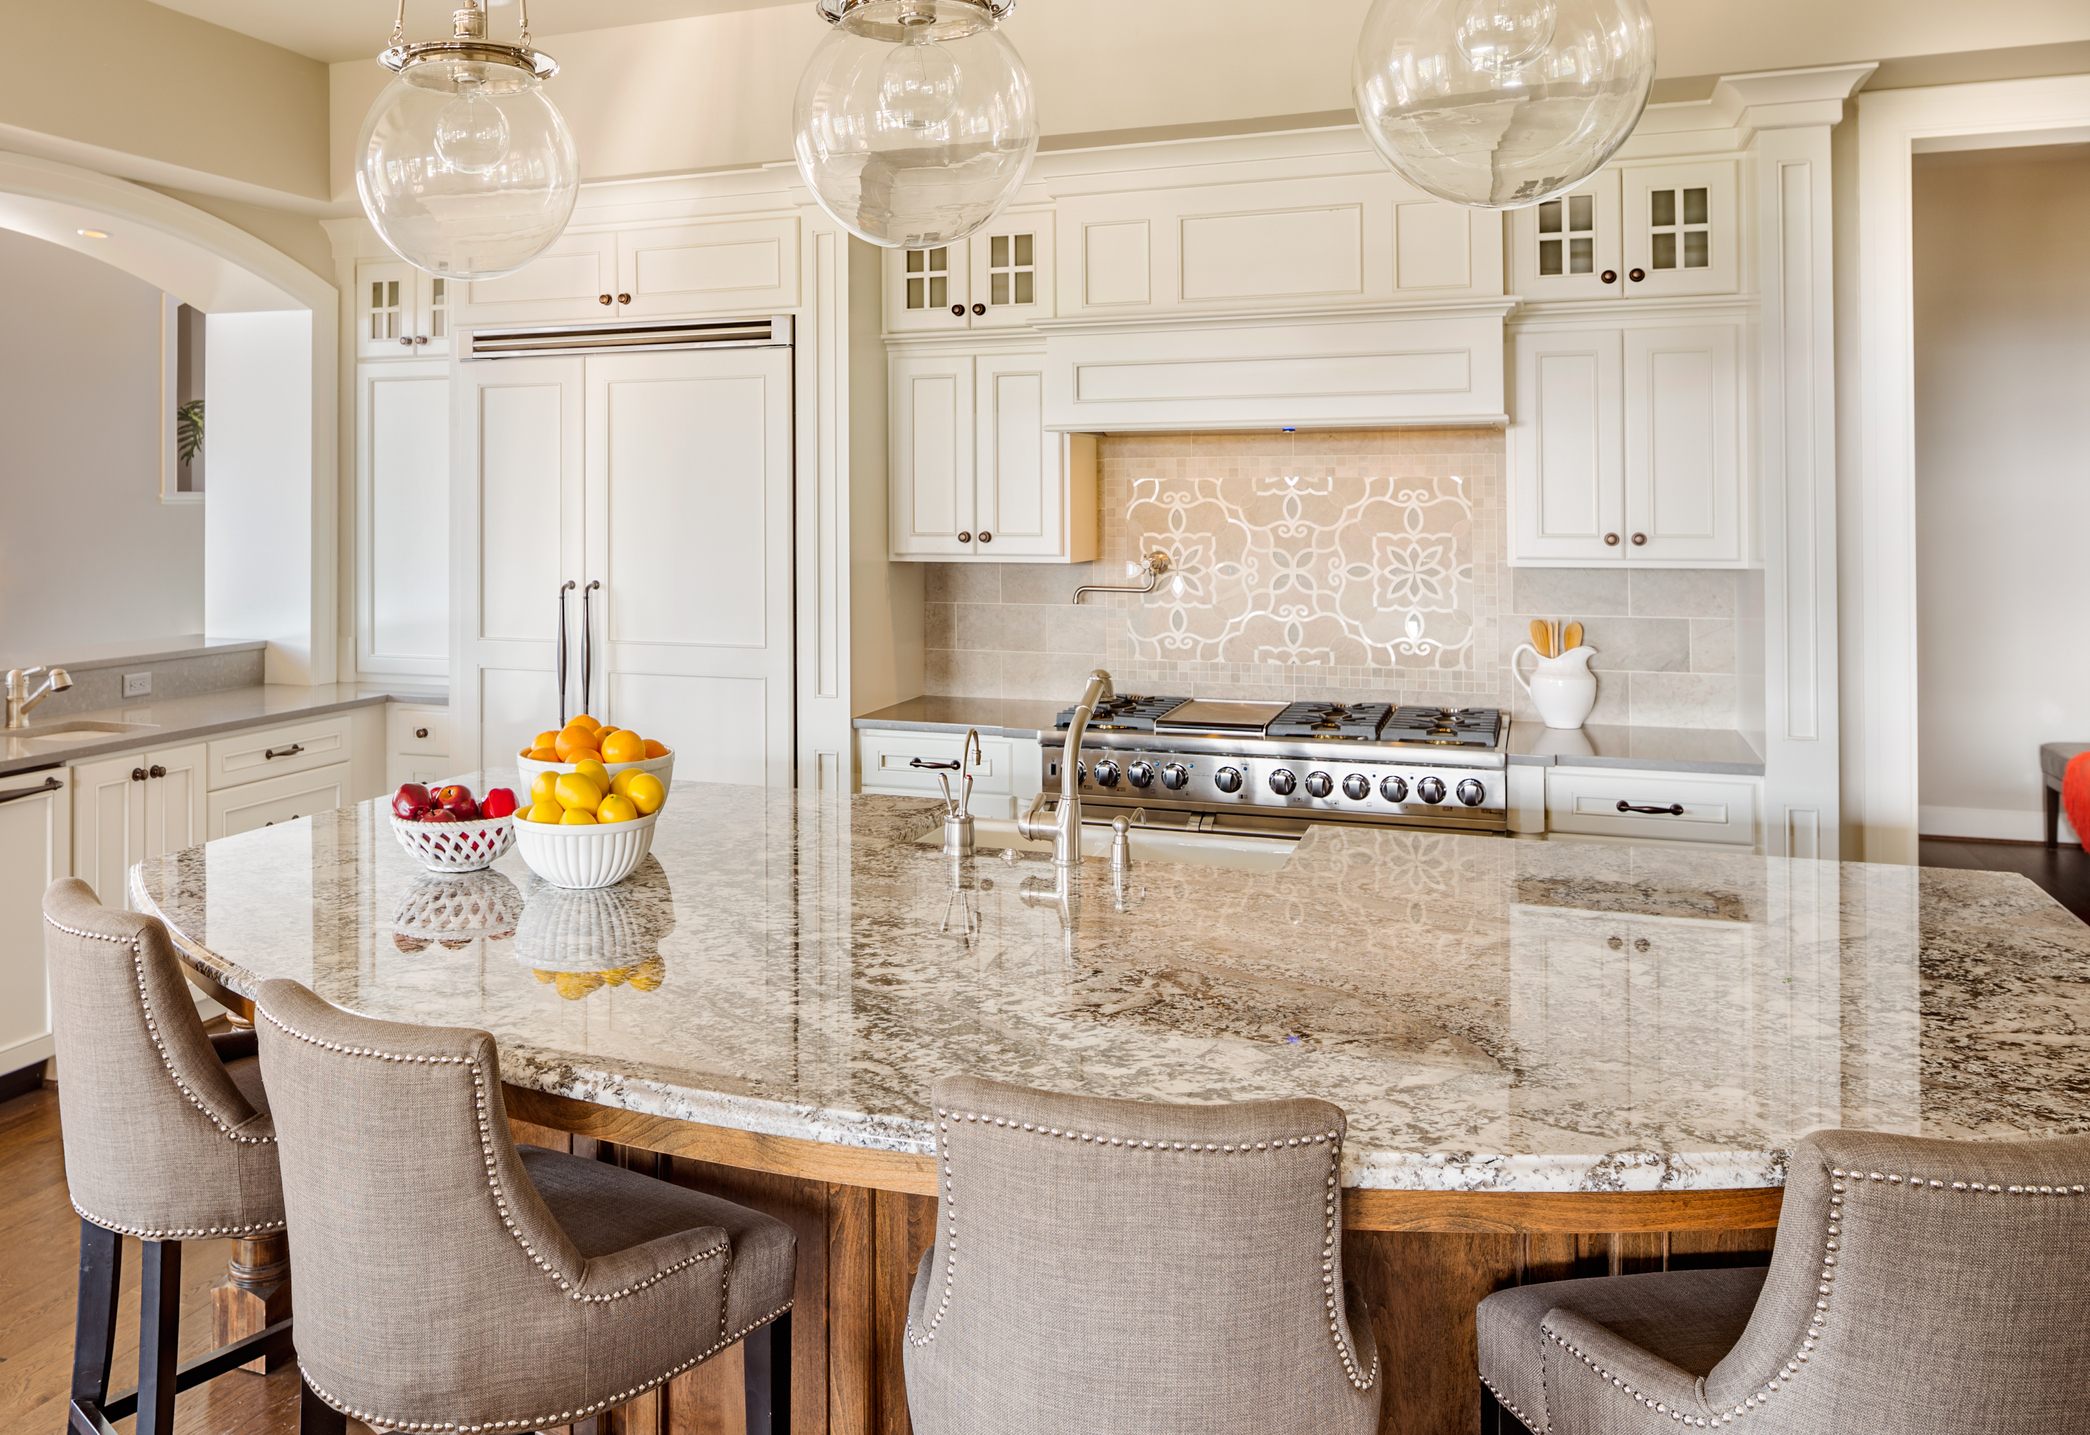 Kitchen with Island, Sink, Cabinetrs, and Hardwood Floors representing Custom Homes in Tampa